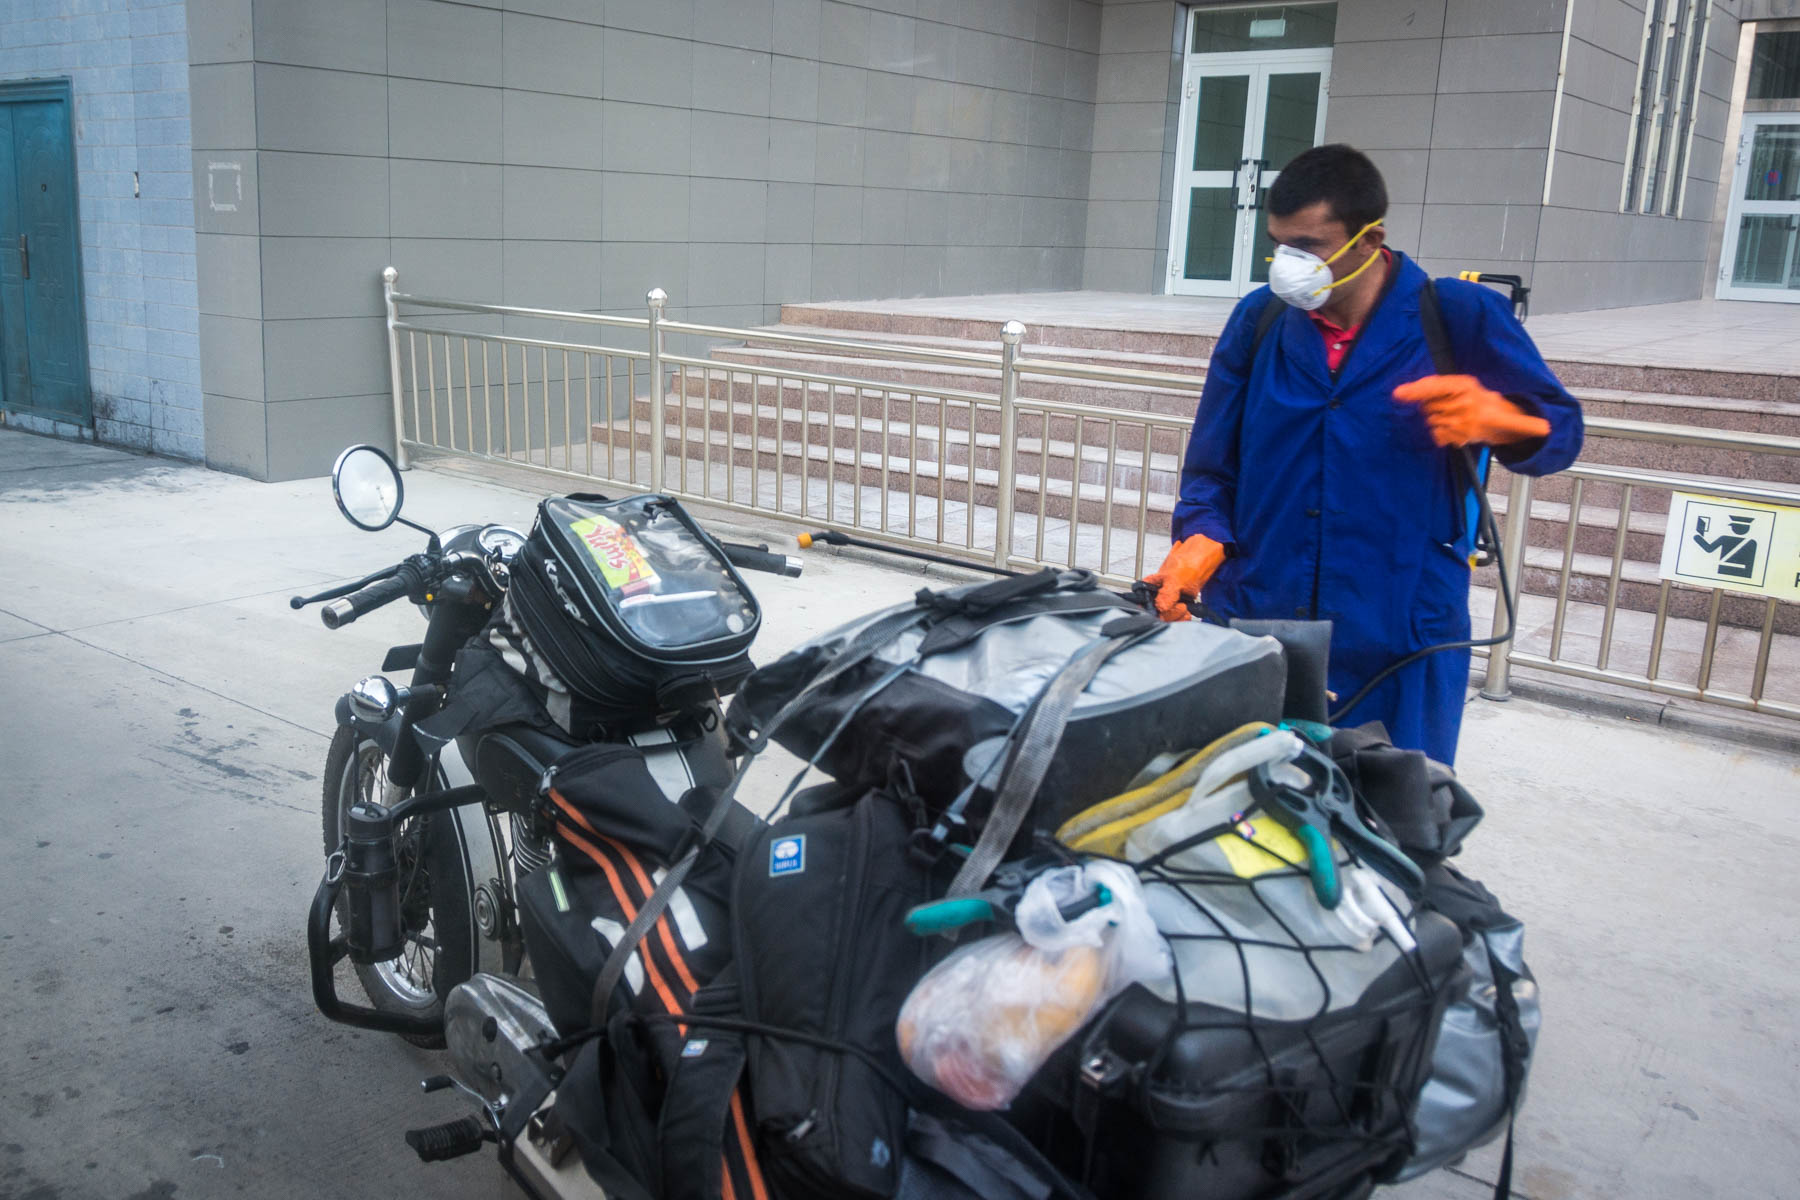 Chinese man in Tashkargan disinfecting some motorbikes that have traveled through the Pakistan - China border crossing at the Khunjerab pass.